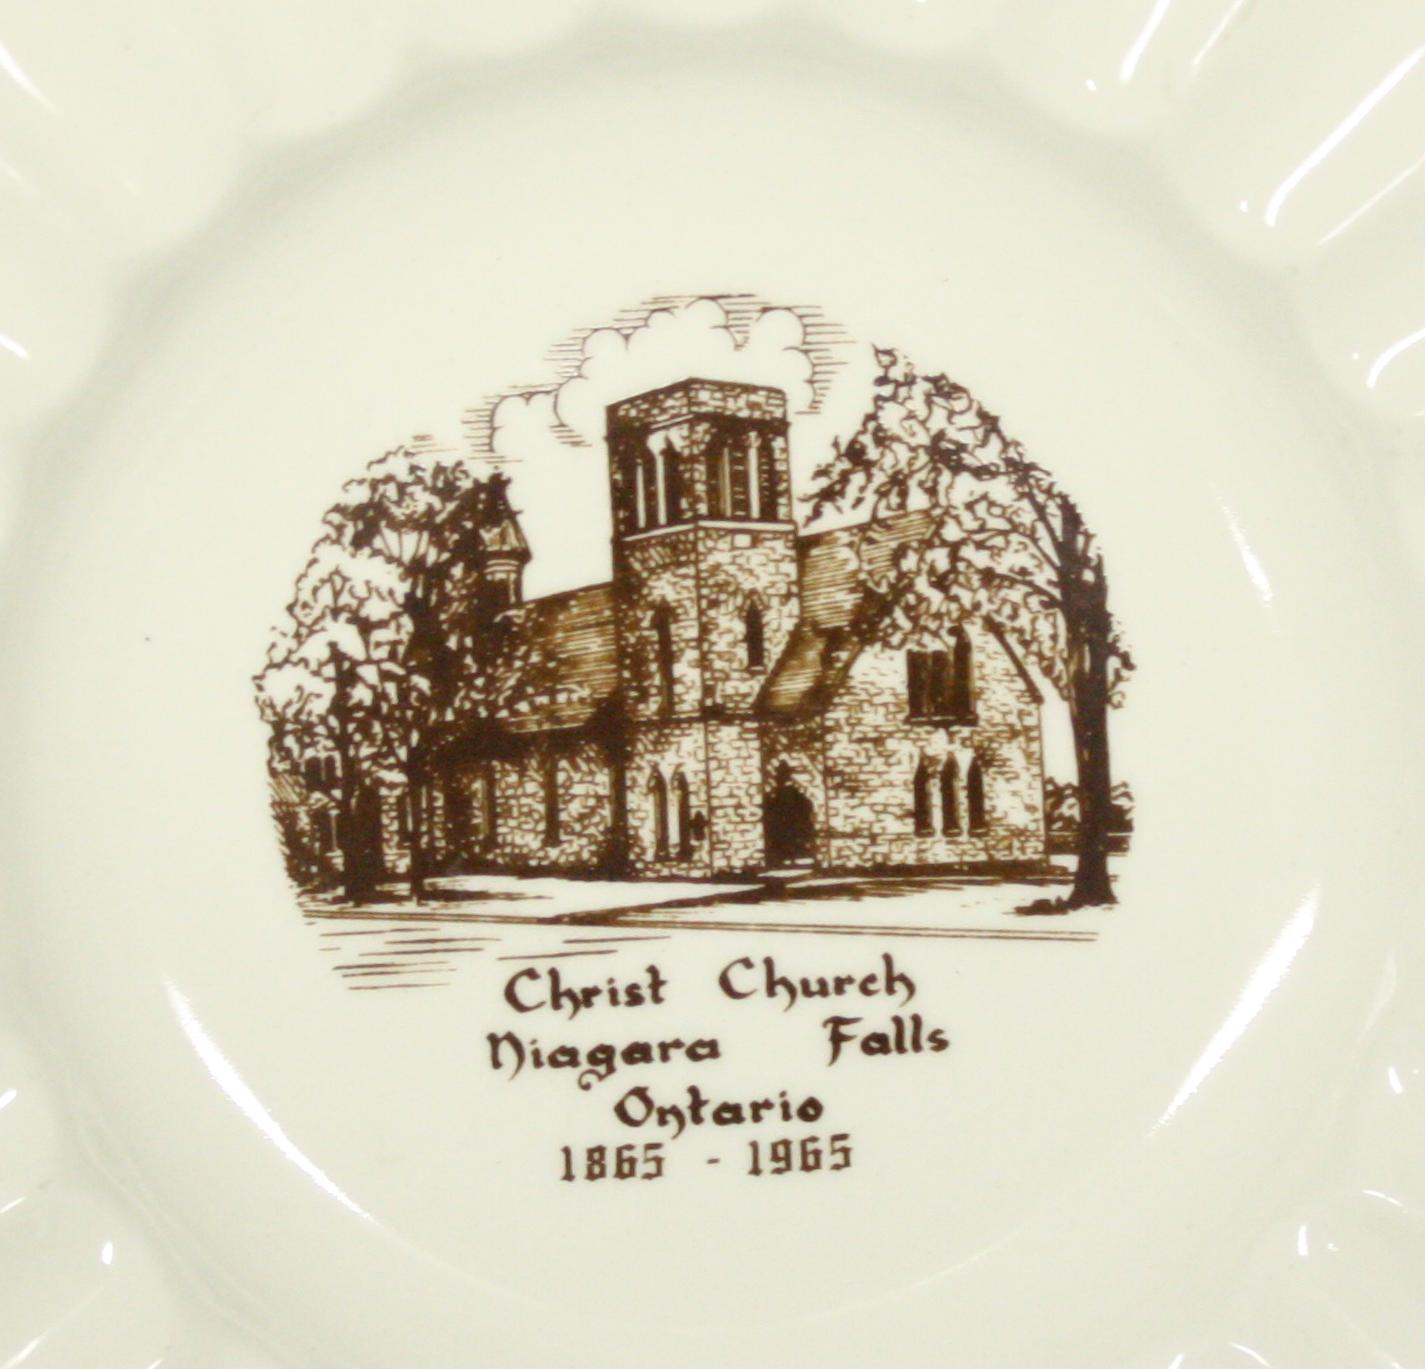 Centenary Commemorative Plate of Christ Church. Plate is made of white China and shows the church building with the dates, 1865-1965.